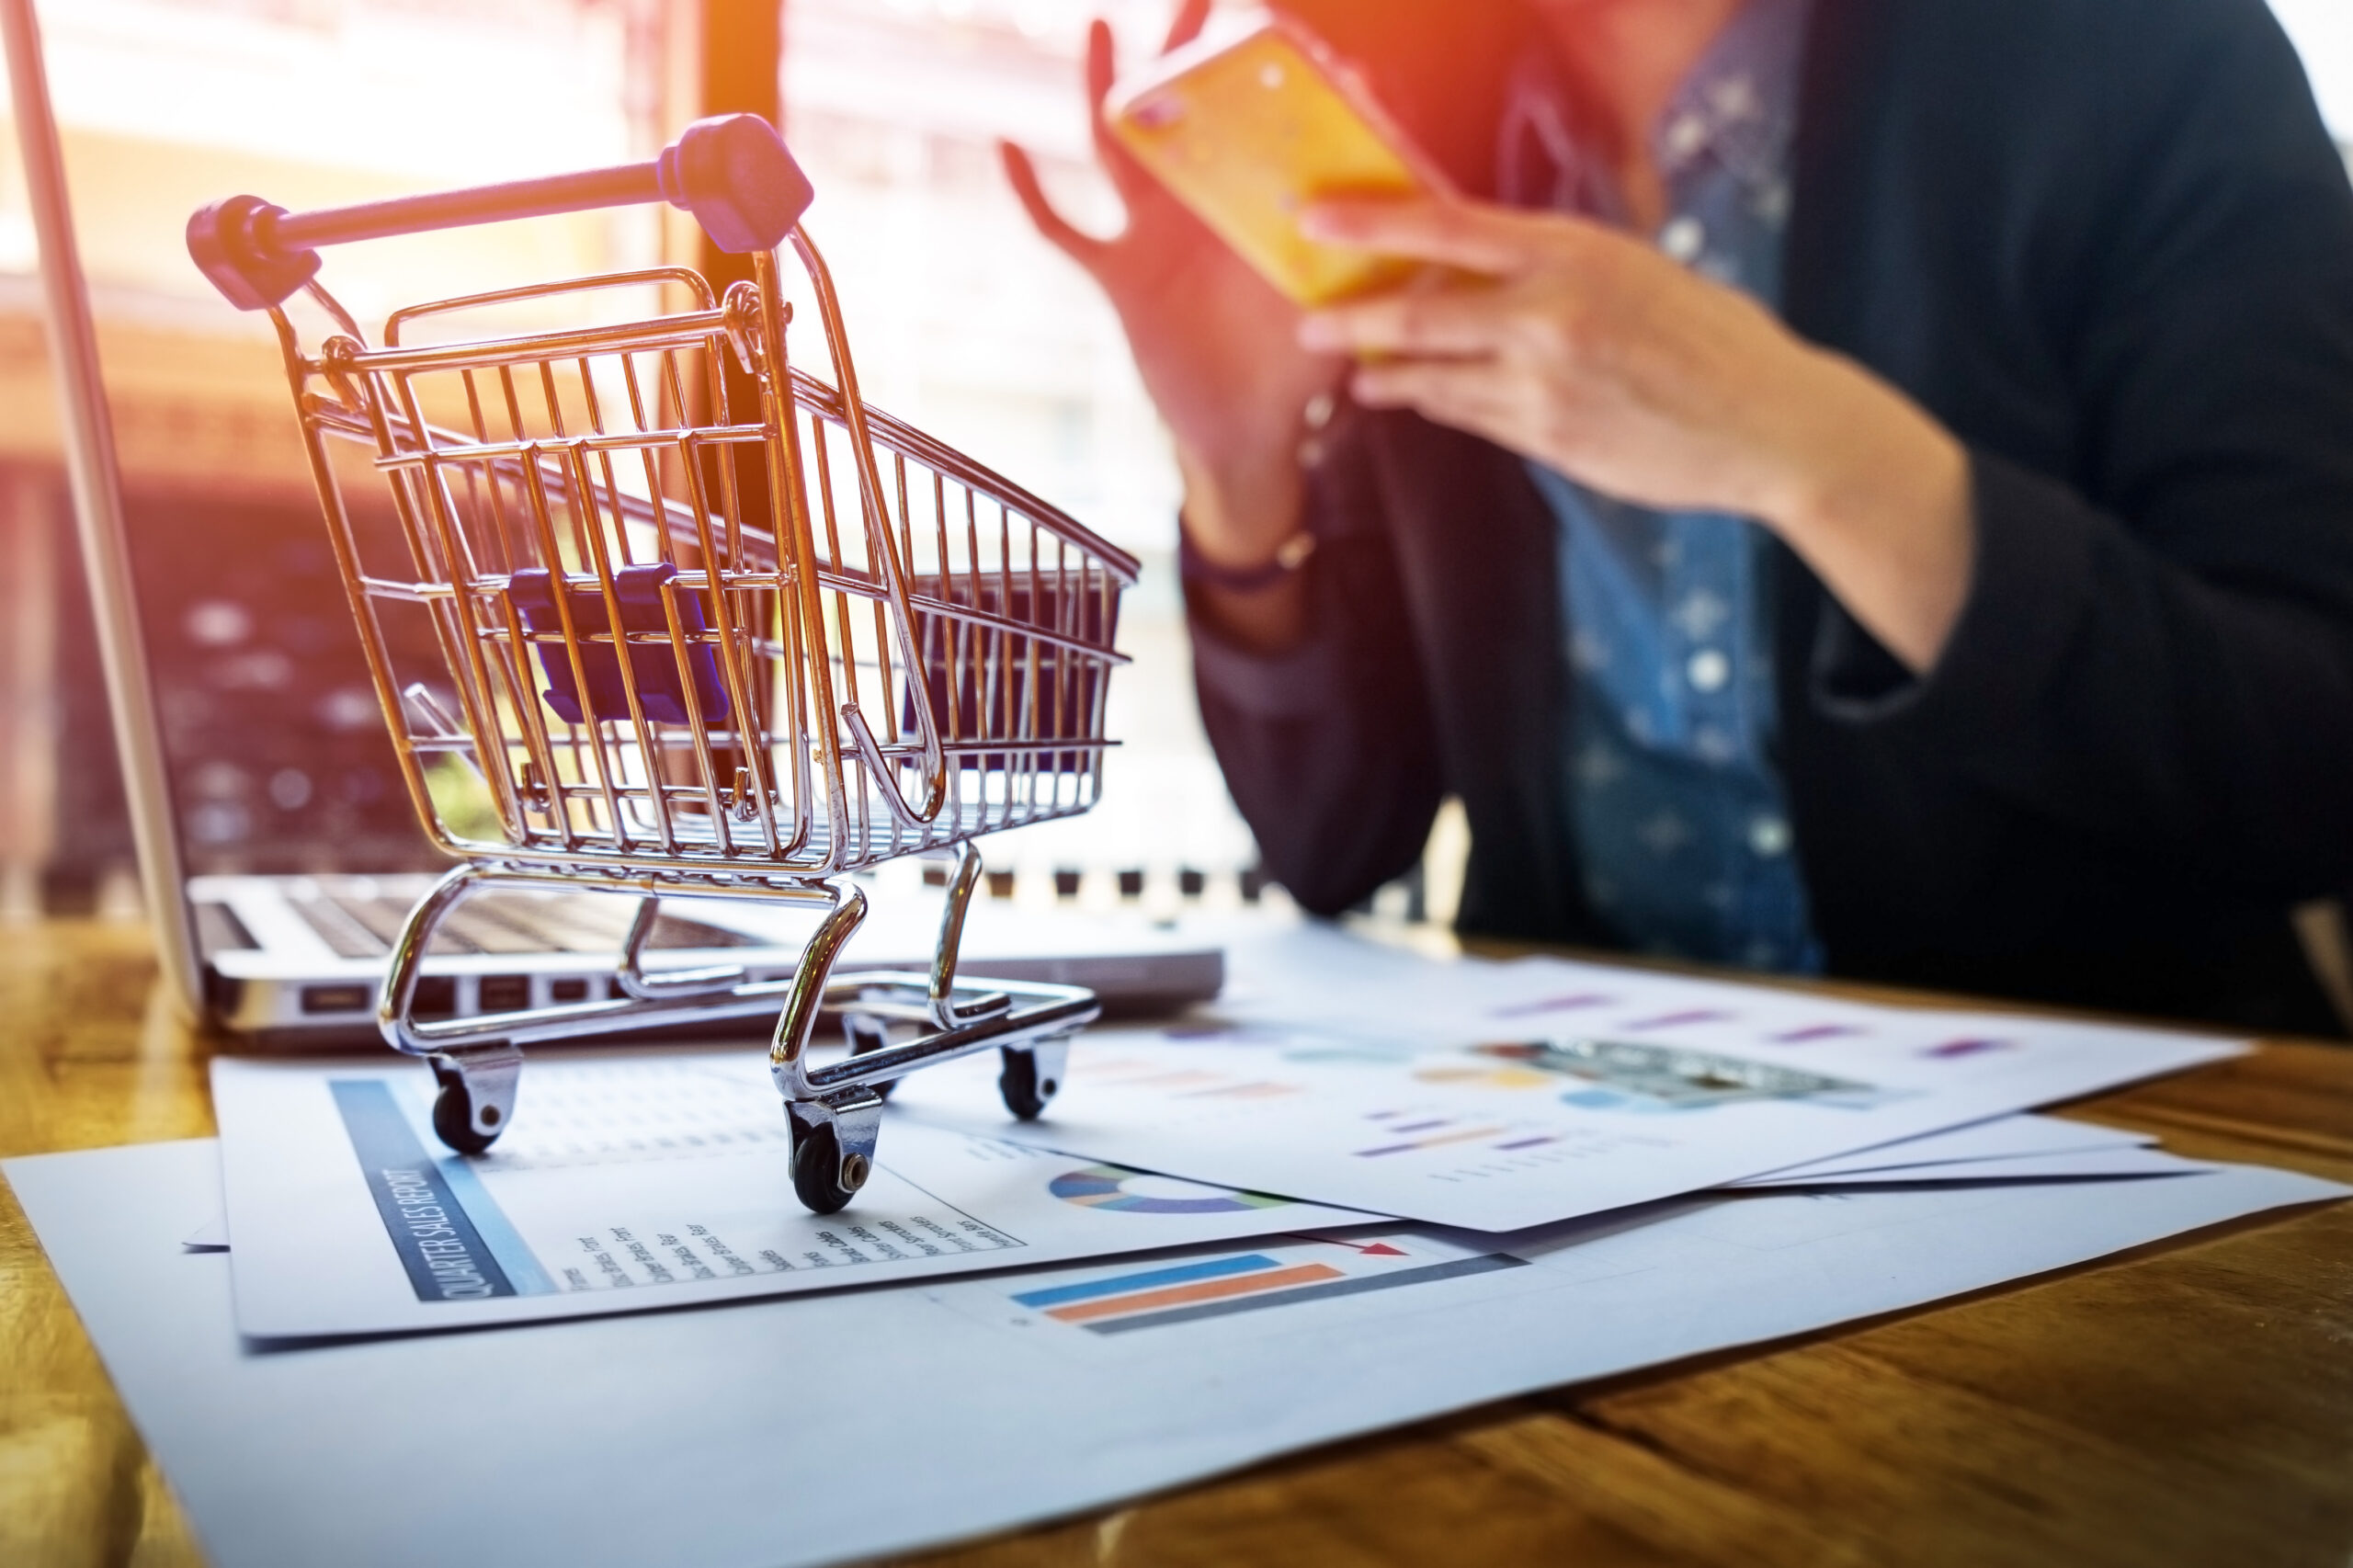 Choosing the right ecommerce platform migration for your business